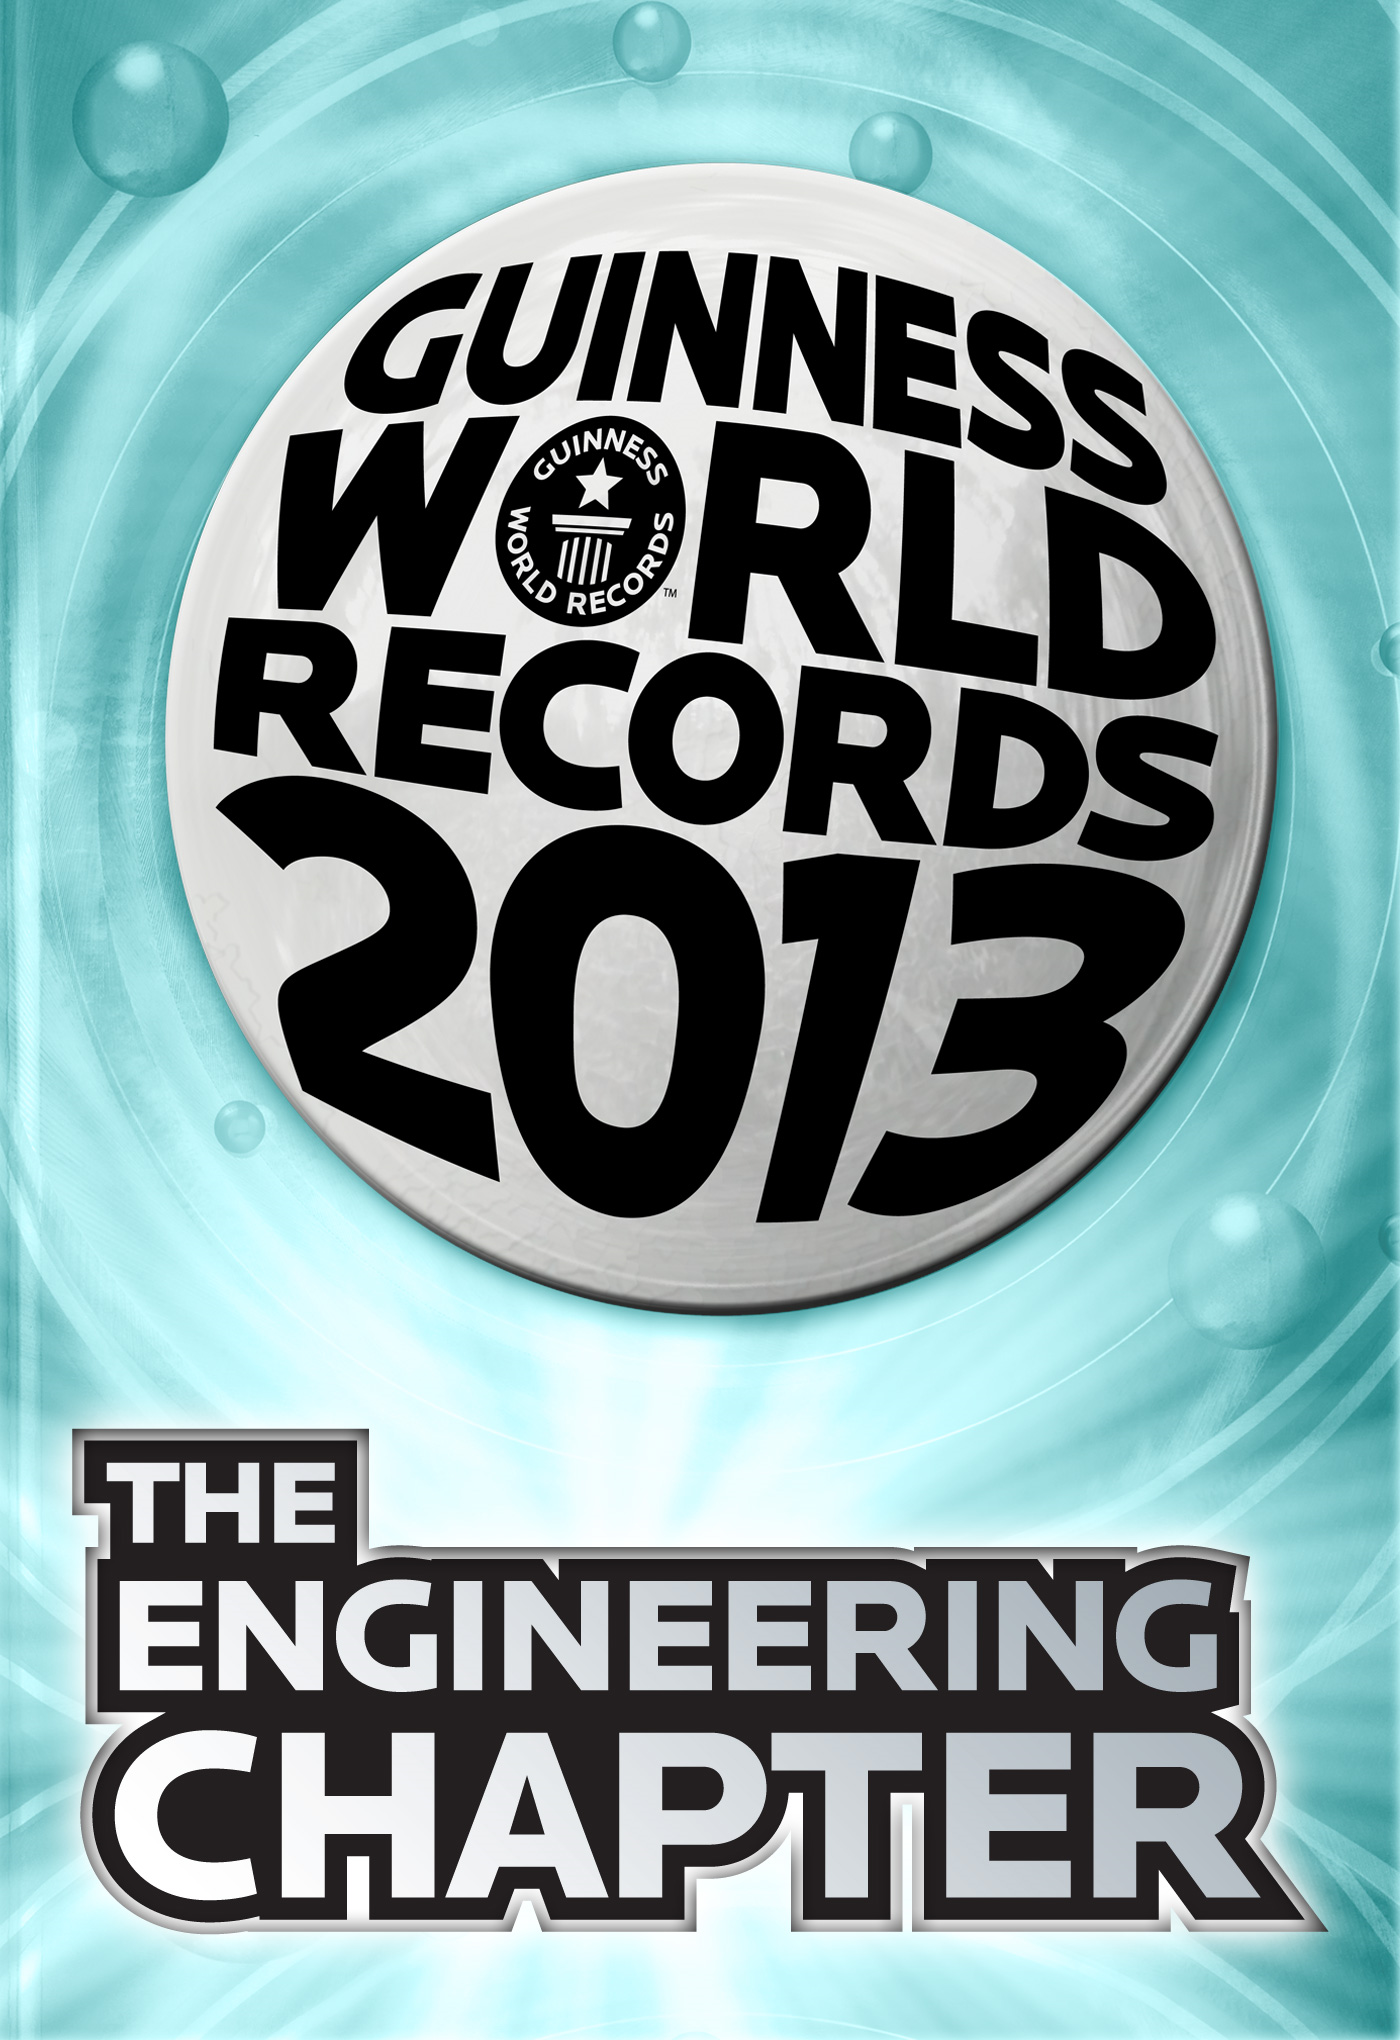 Guinness World Records 2013 - The Engineering Chapter